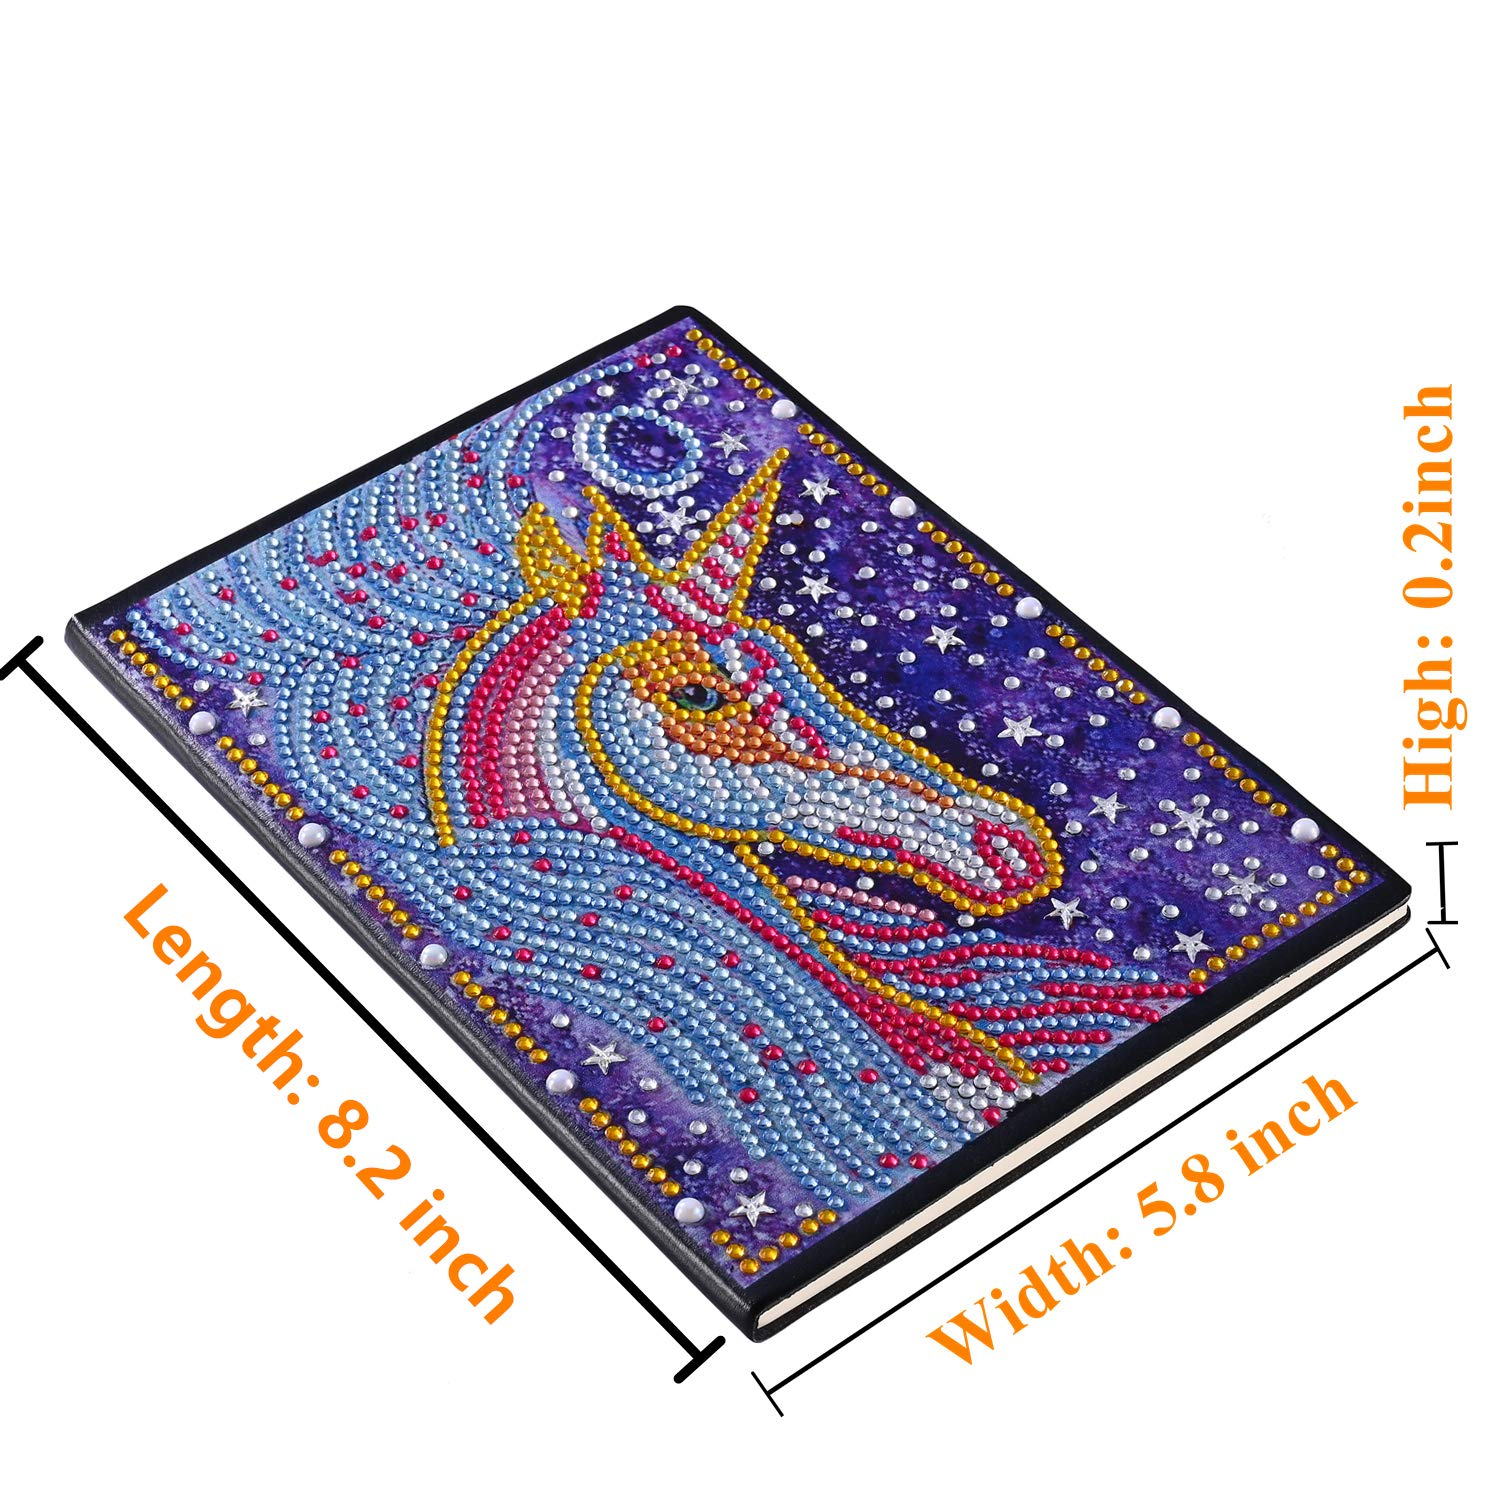 Lxmsja Diamond Painting Notebook DIY Journal with Special Shaped Diamond Cover Diamond Art Diary 100 Pages//50 Sheets A5 Plain//Blank Book Horse